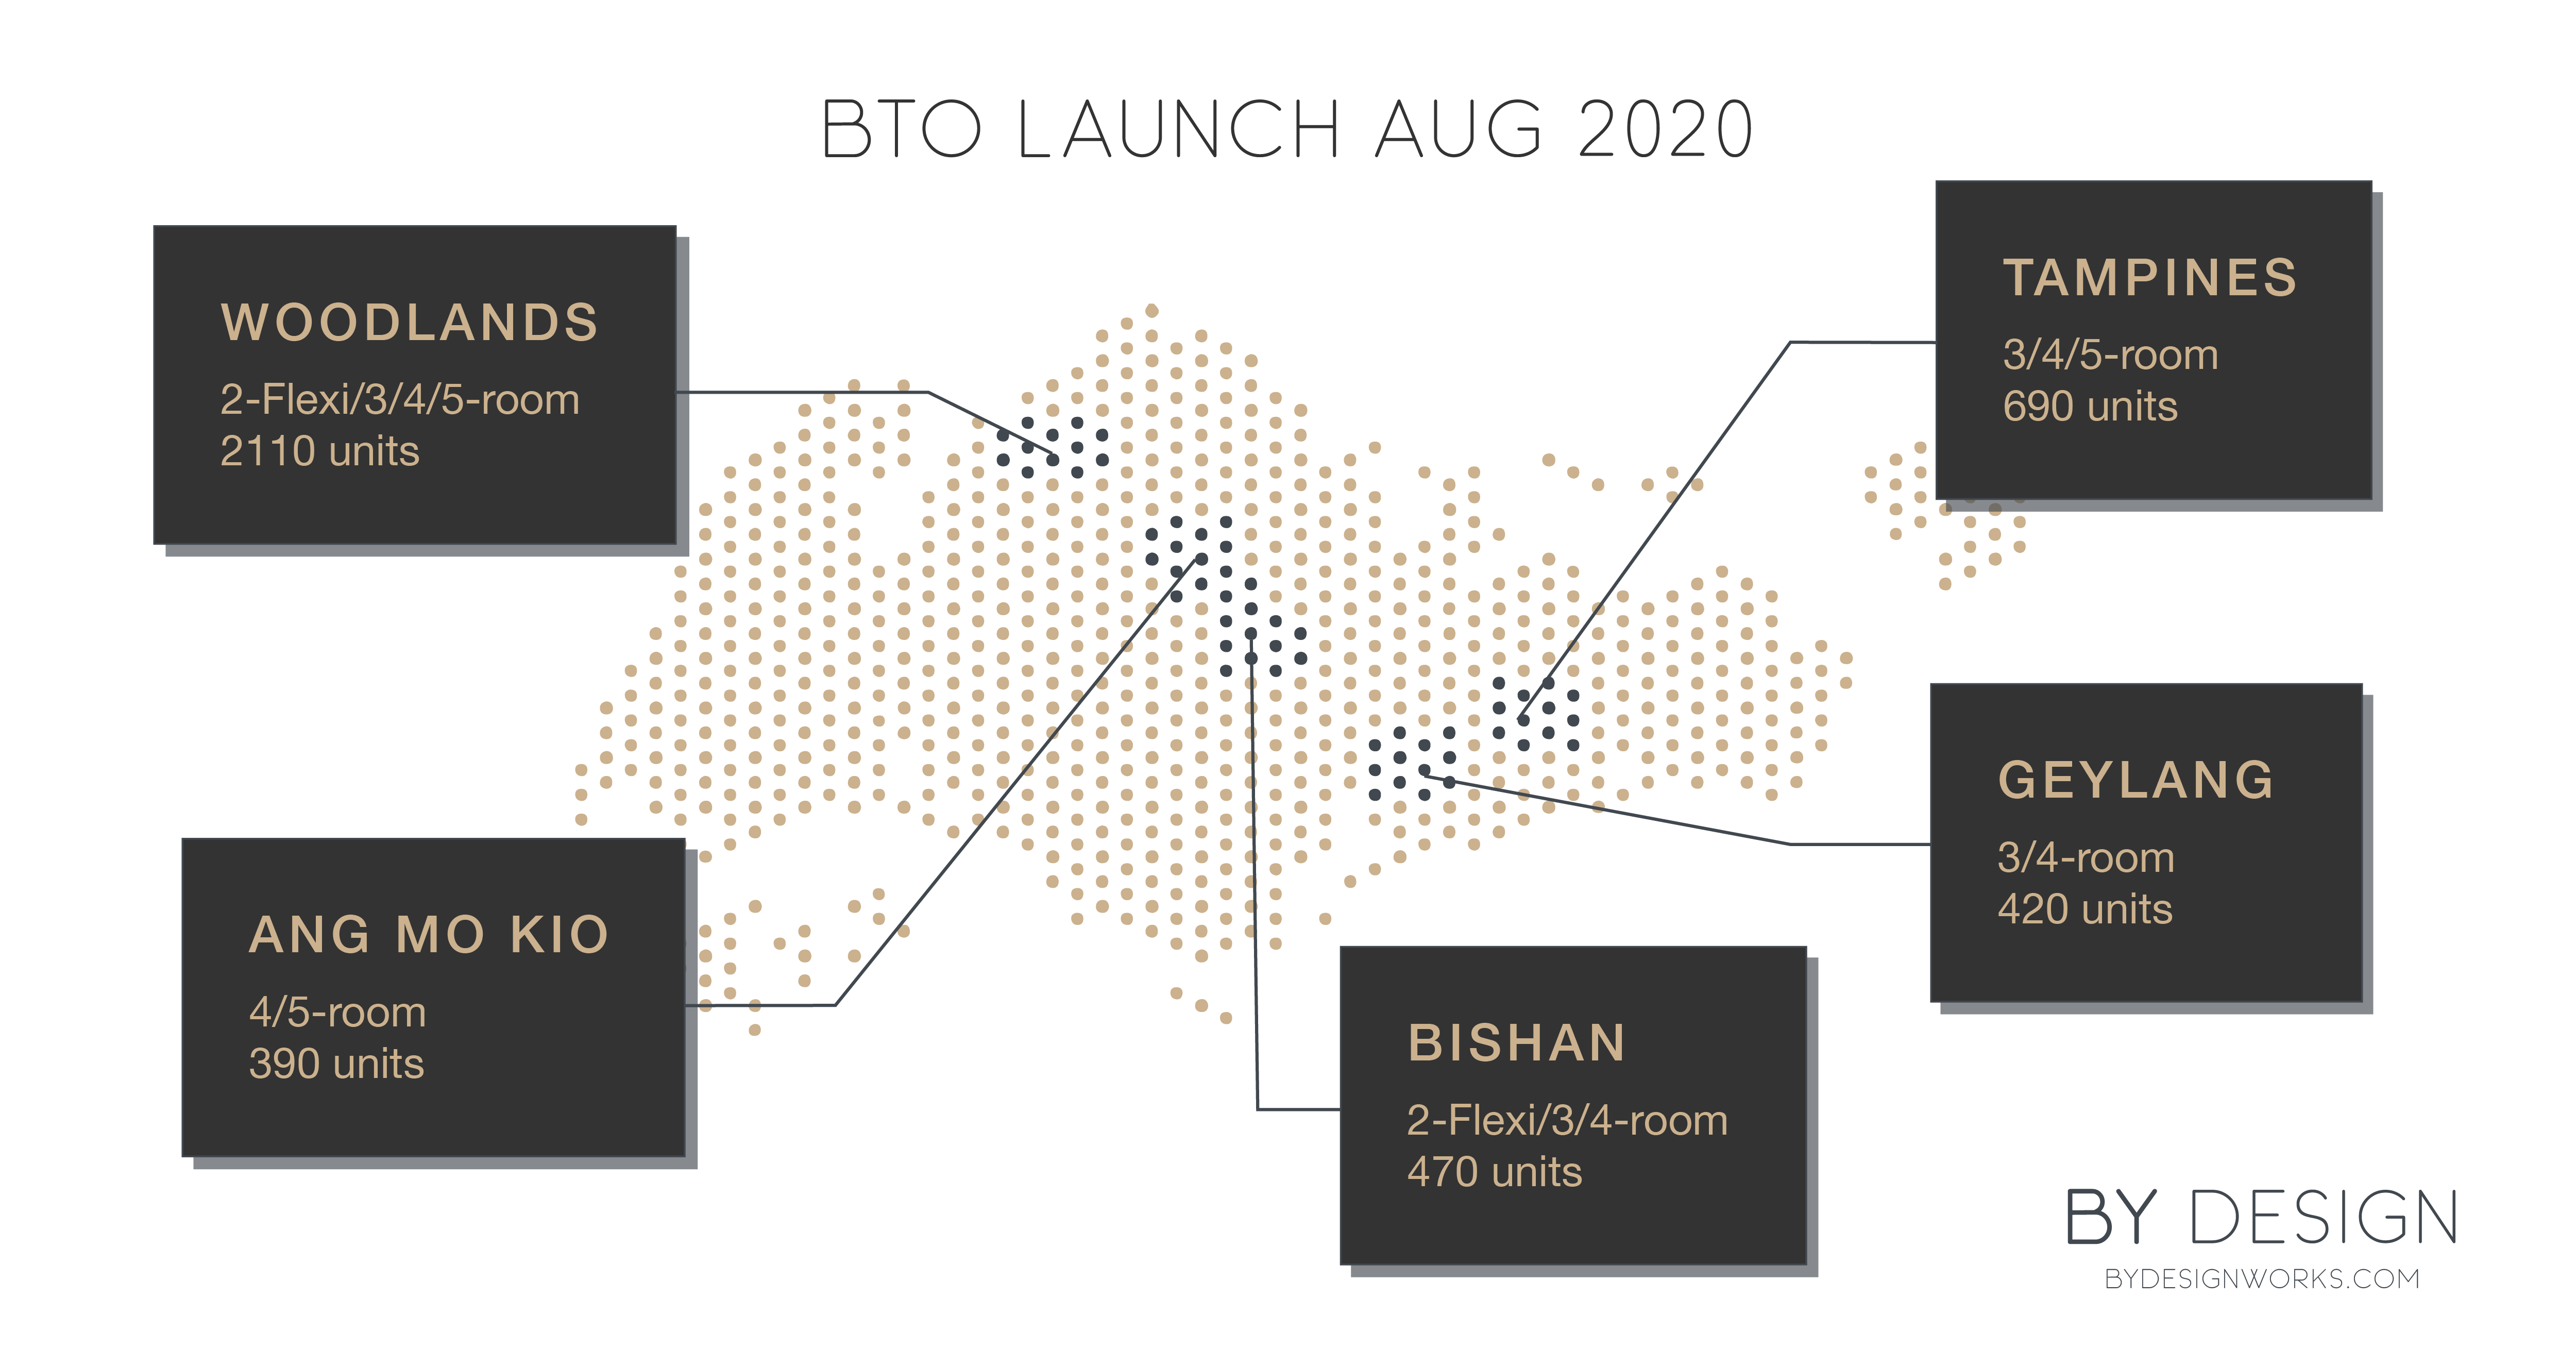 BTO Launch AUG 2020